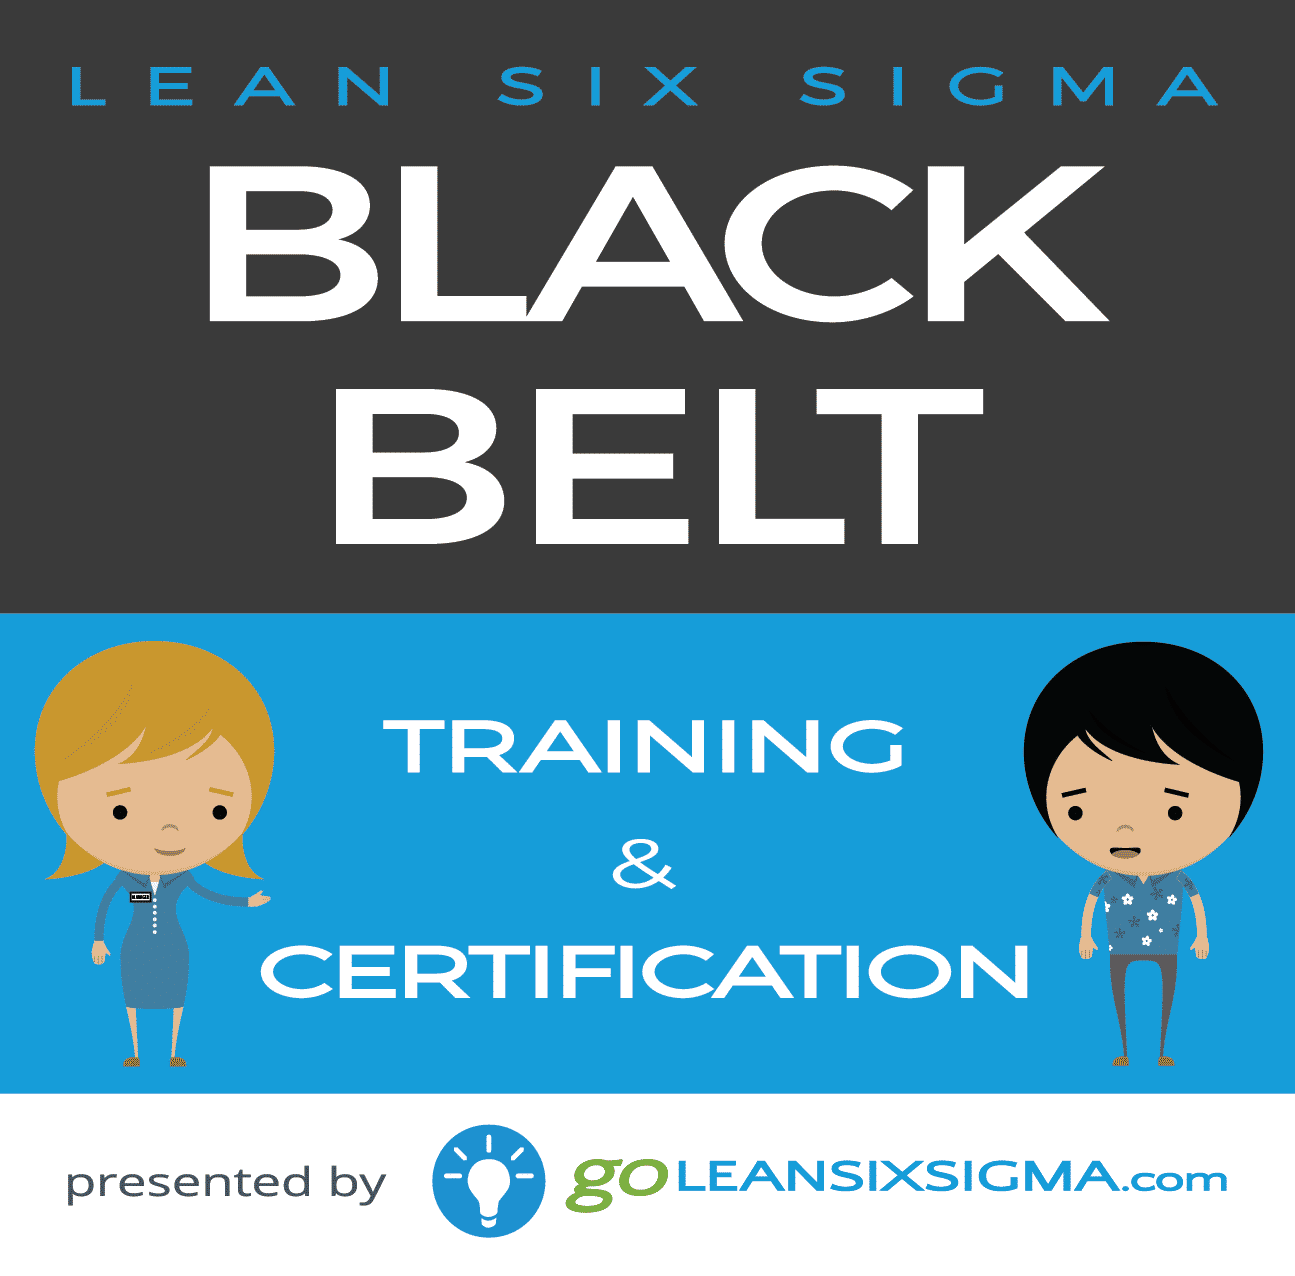 Black Belt Training & Certification